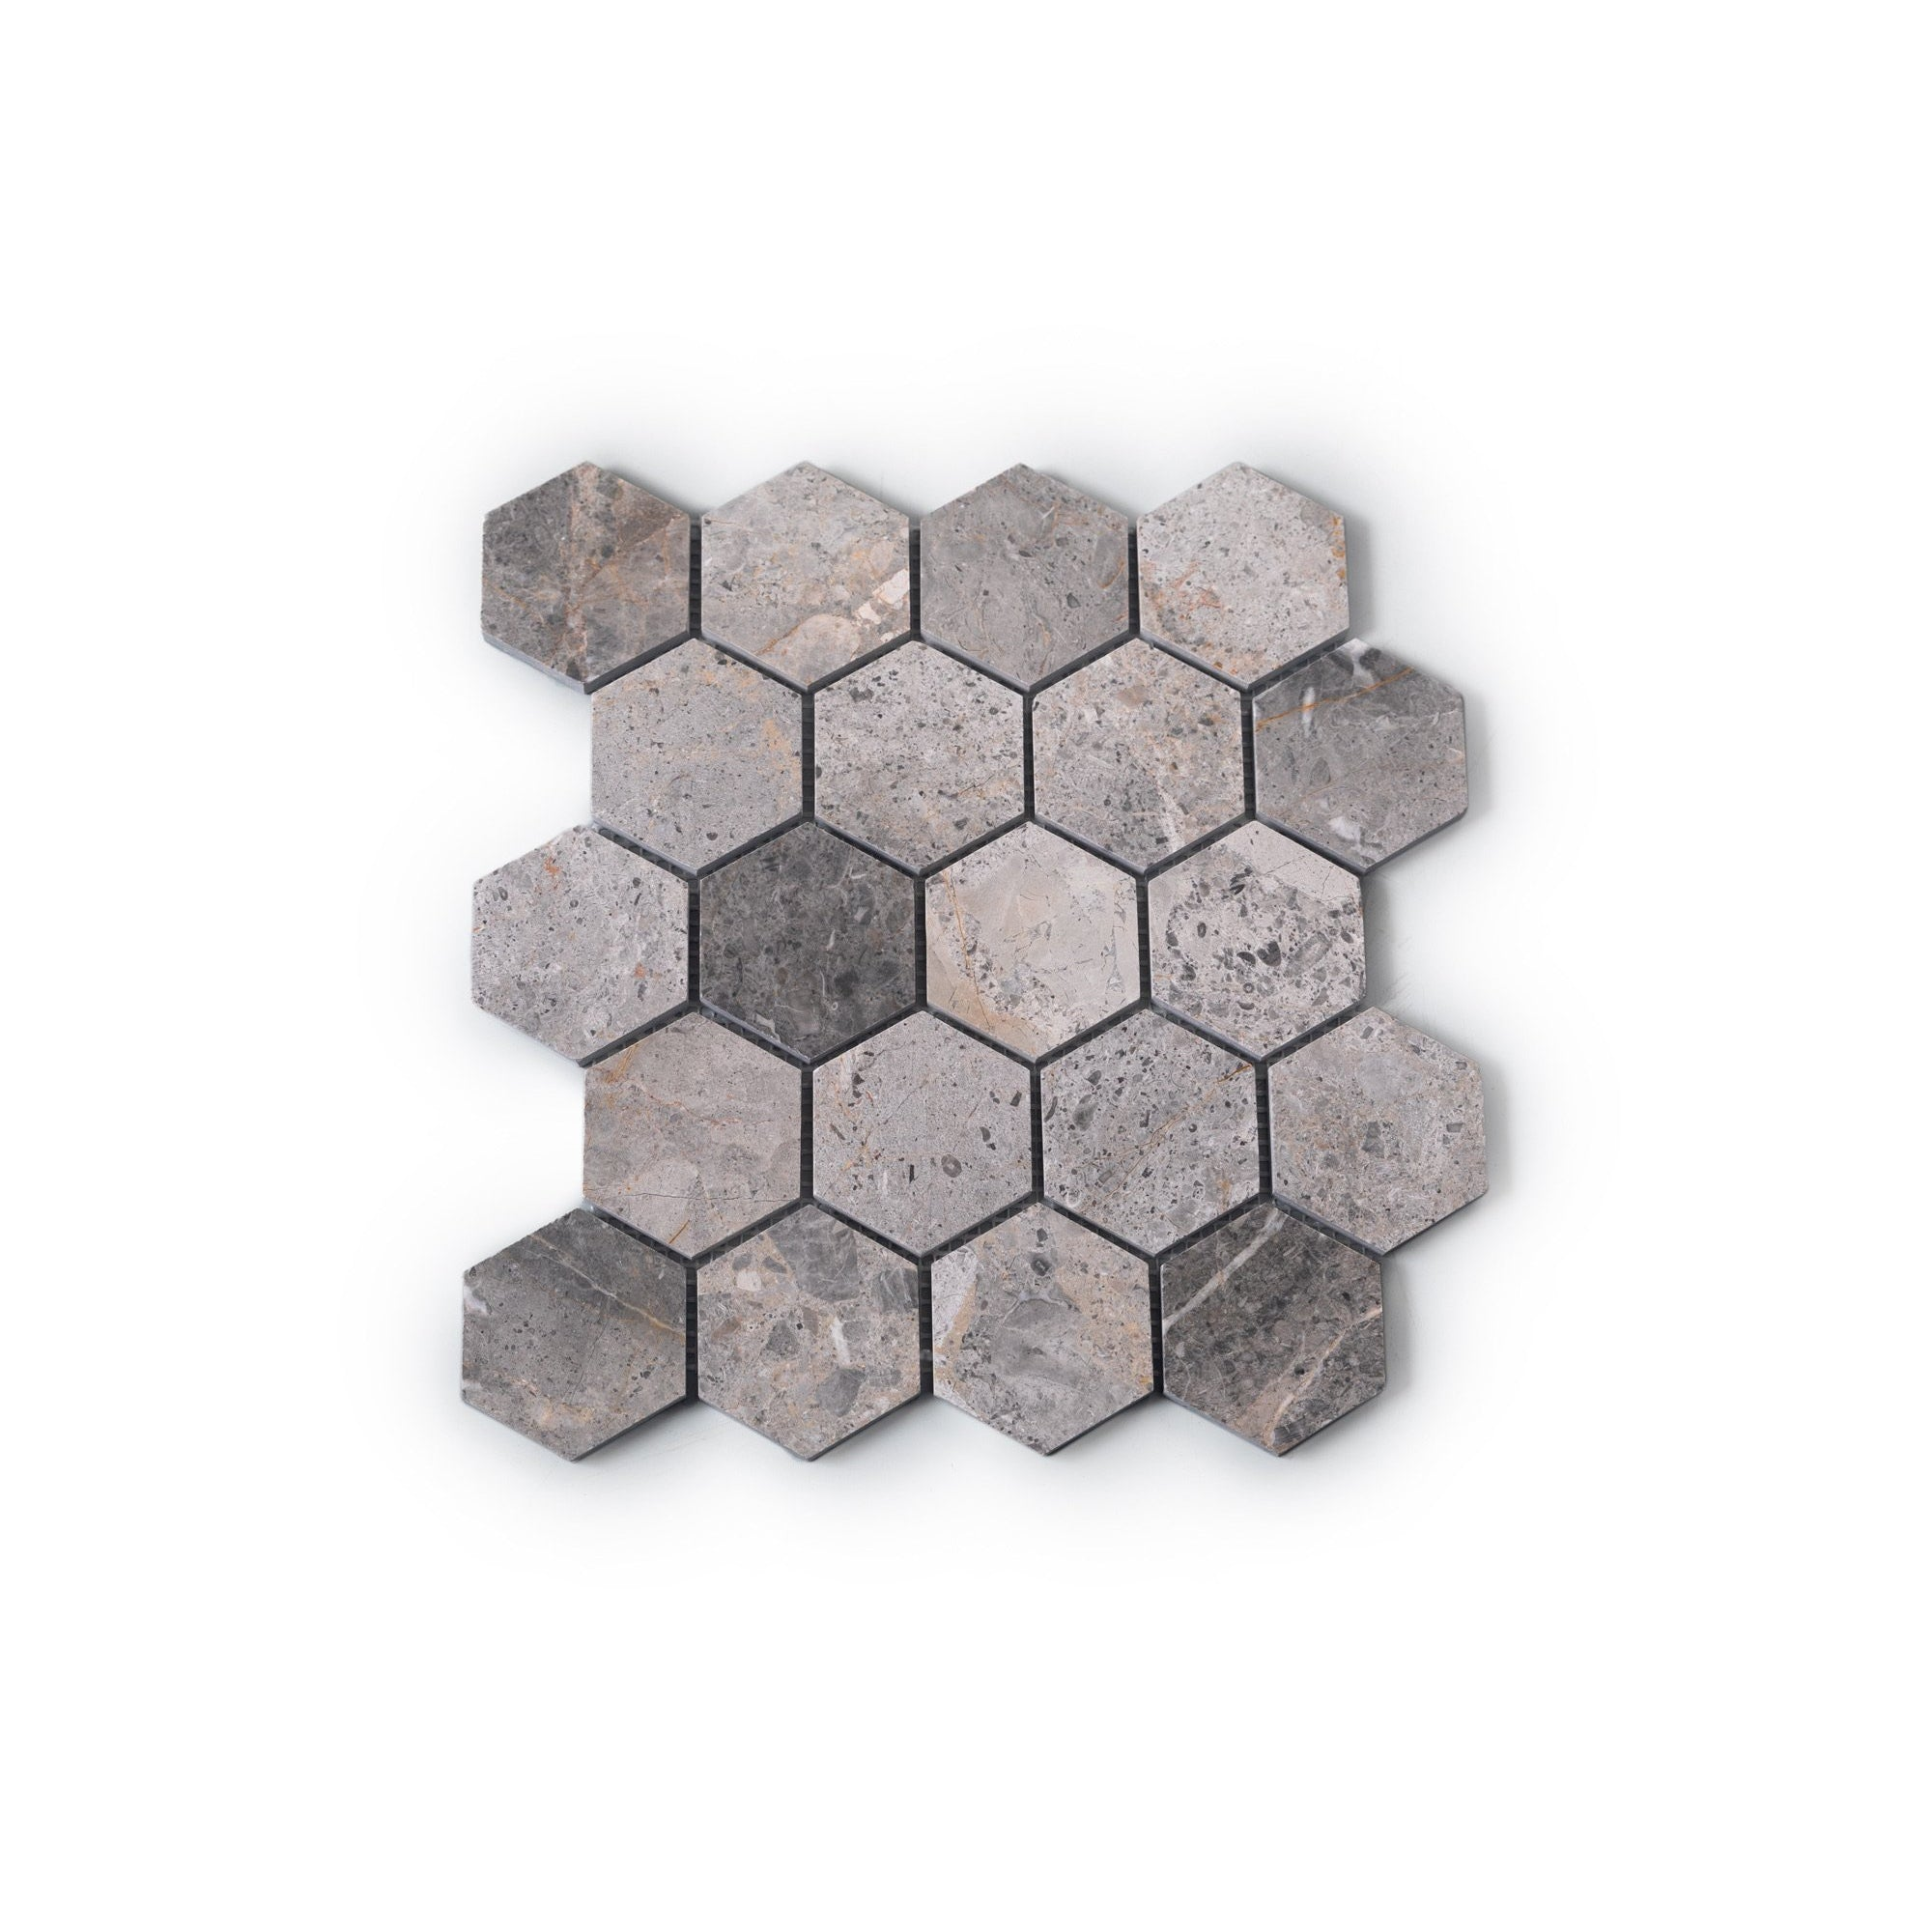 Natural Stone Mosaic Tiles - Grey Multicolour Marble Hexagon (298x290mm)